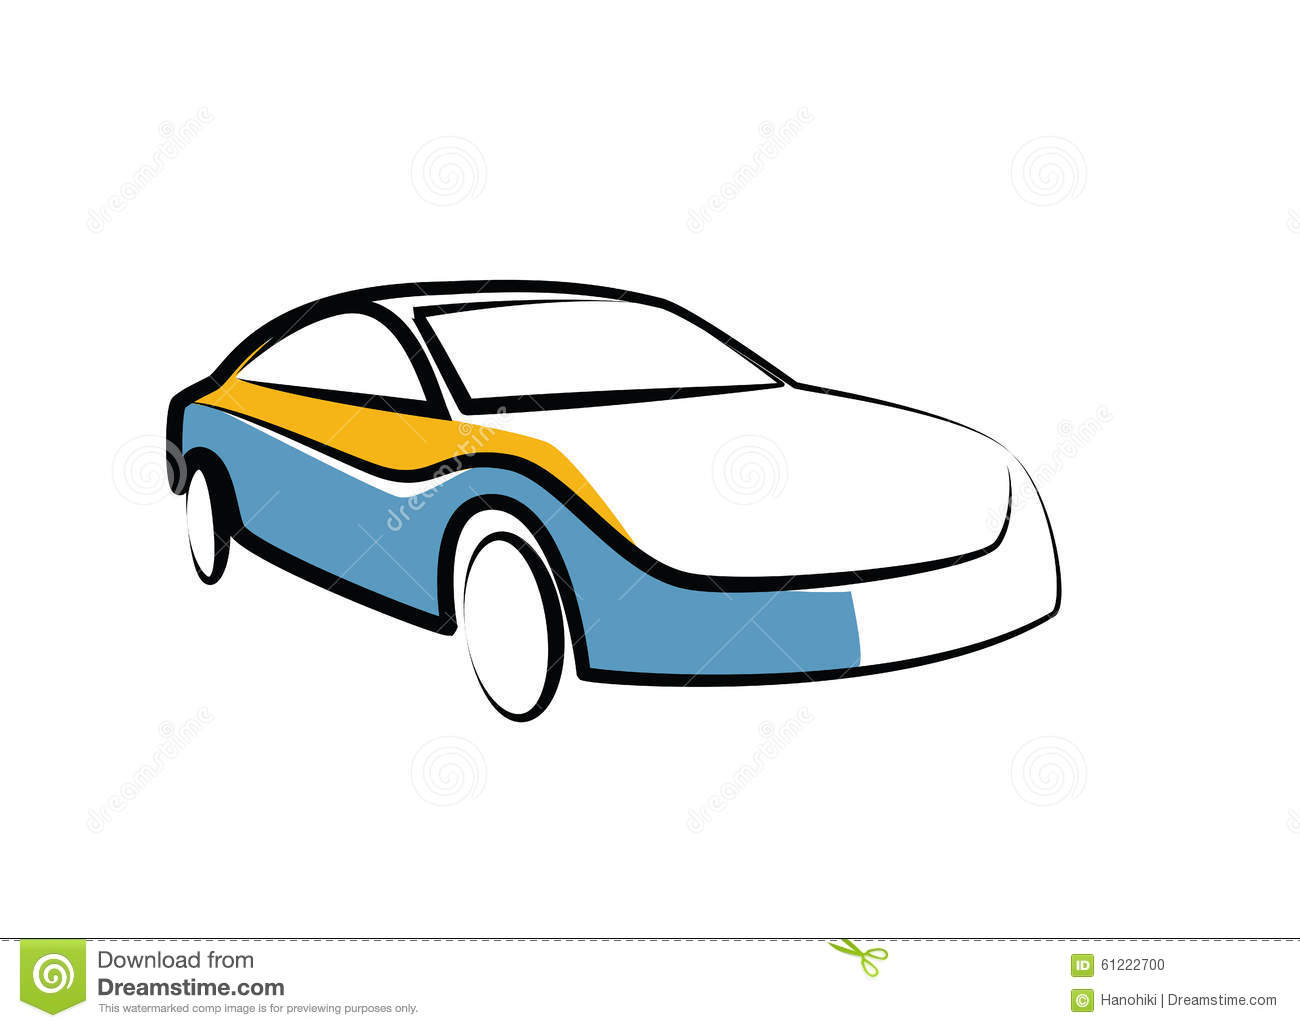 Dessin simple d 39 un croquis automatique automobile de - Dessin automobile ...